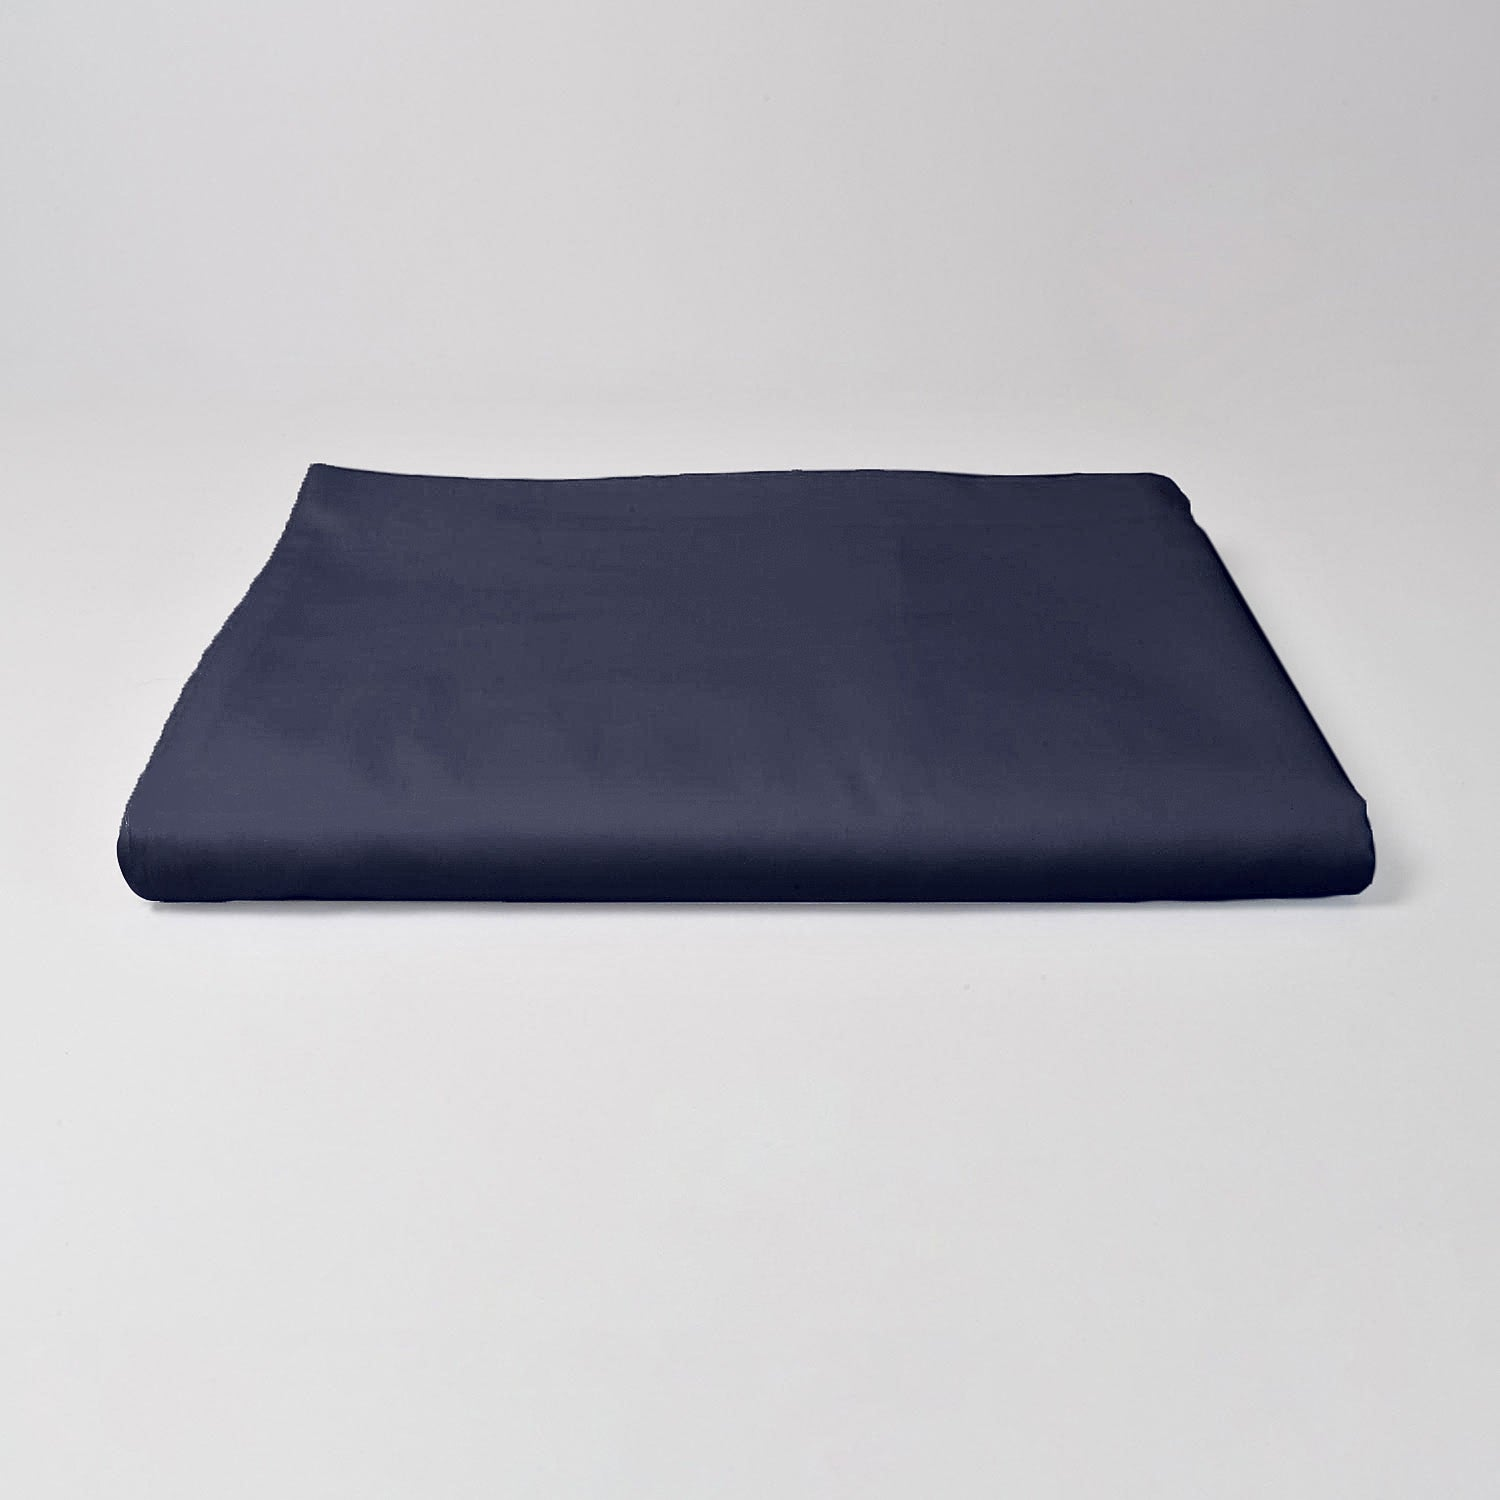 Luxus Spannbettlaken - Navy Blue